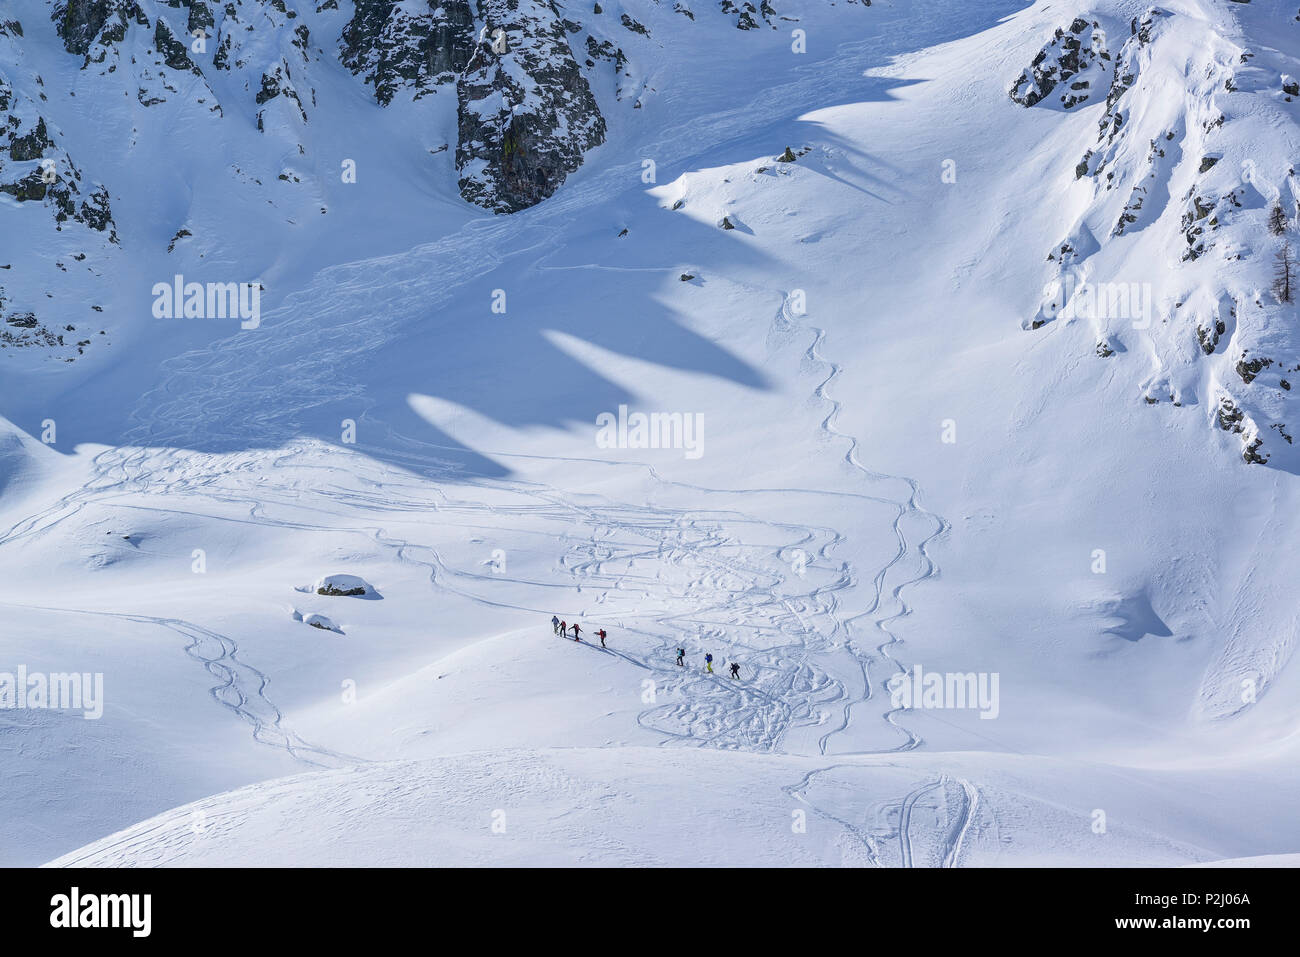 Several persons back-country skiing ascending to Passo Croce, Passo Croce, Valle Maira, Cottian Alps, Piedmont, Italy - Stock Image